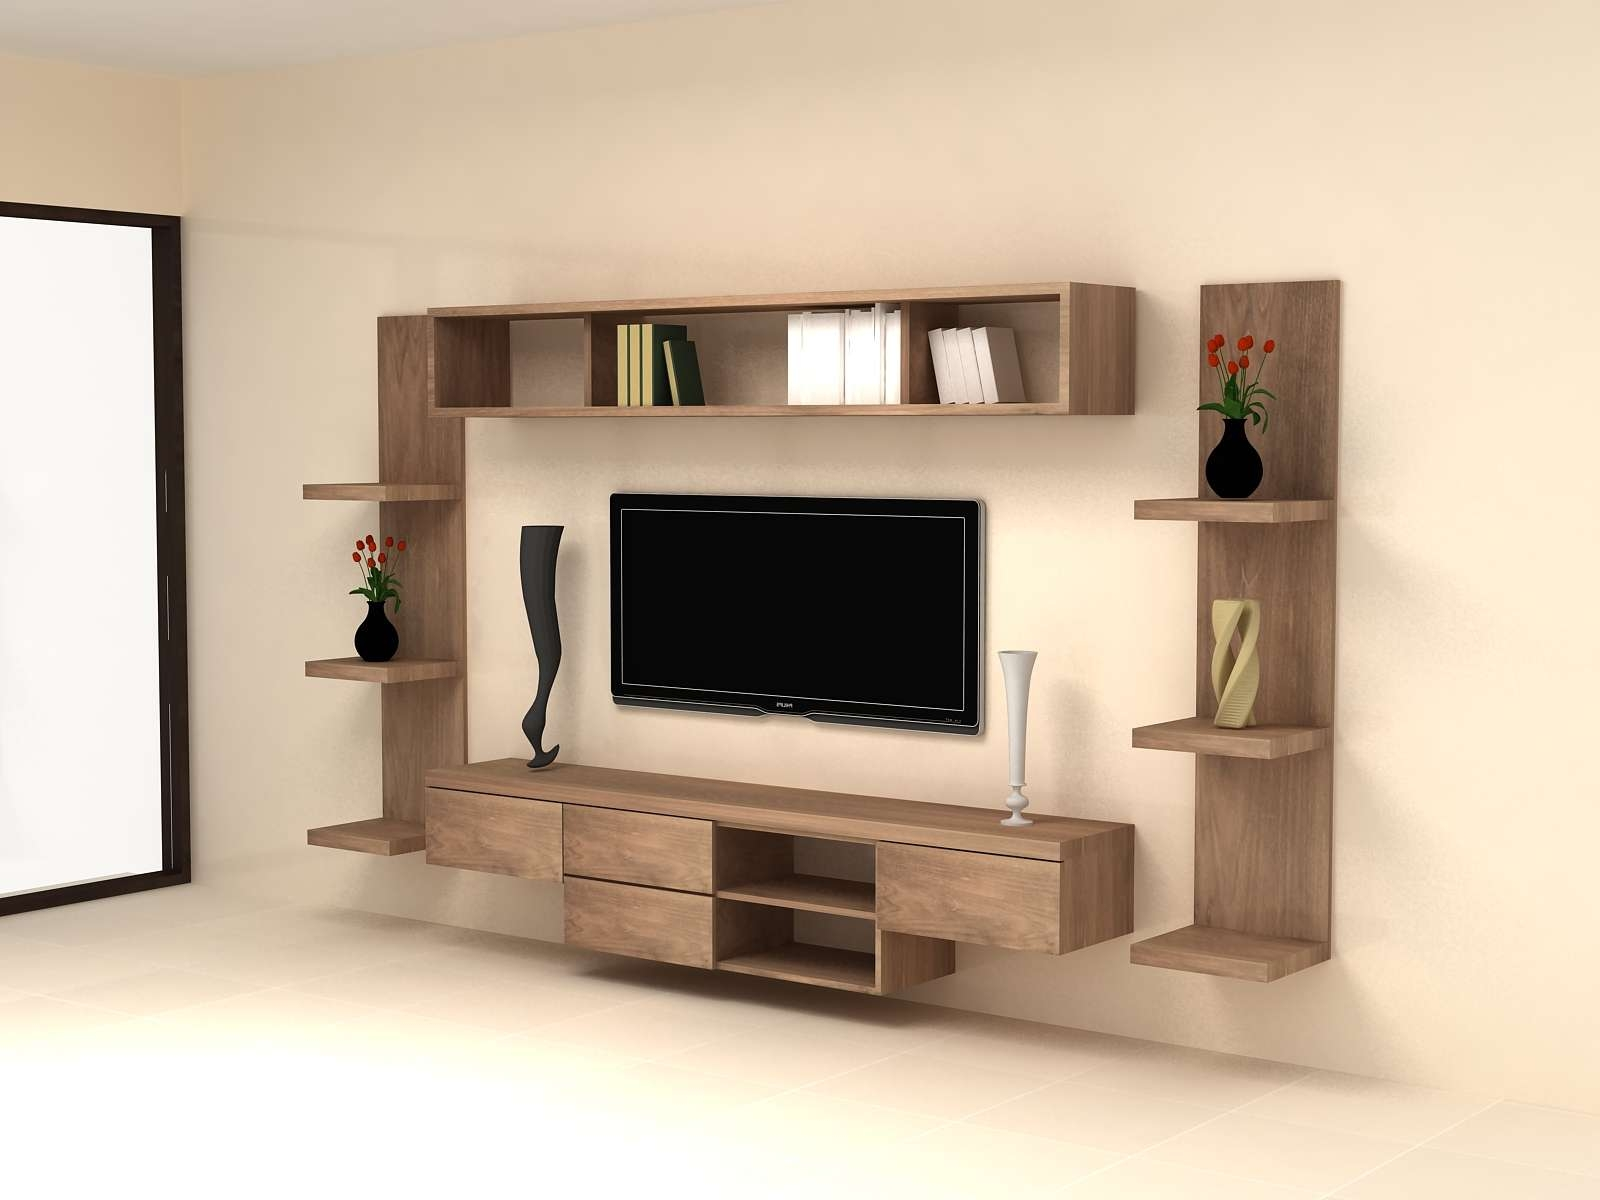 Bedroom : Tv Unit Design Tv Stand Cabinet Design Cheap Tv Cabinets Inside Modern Design Tv Cabinets (View 8 of 20)